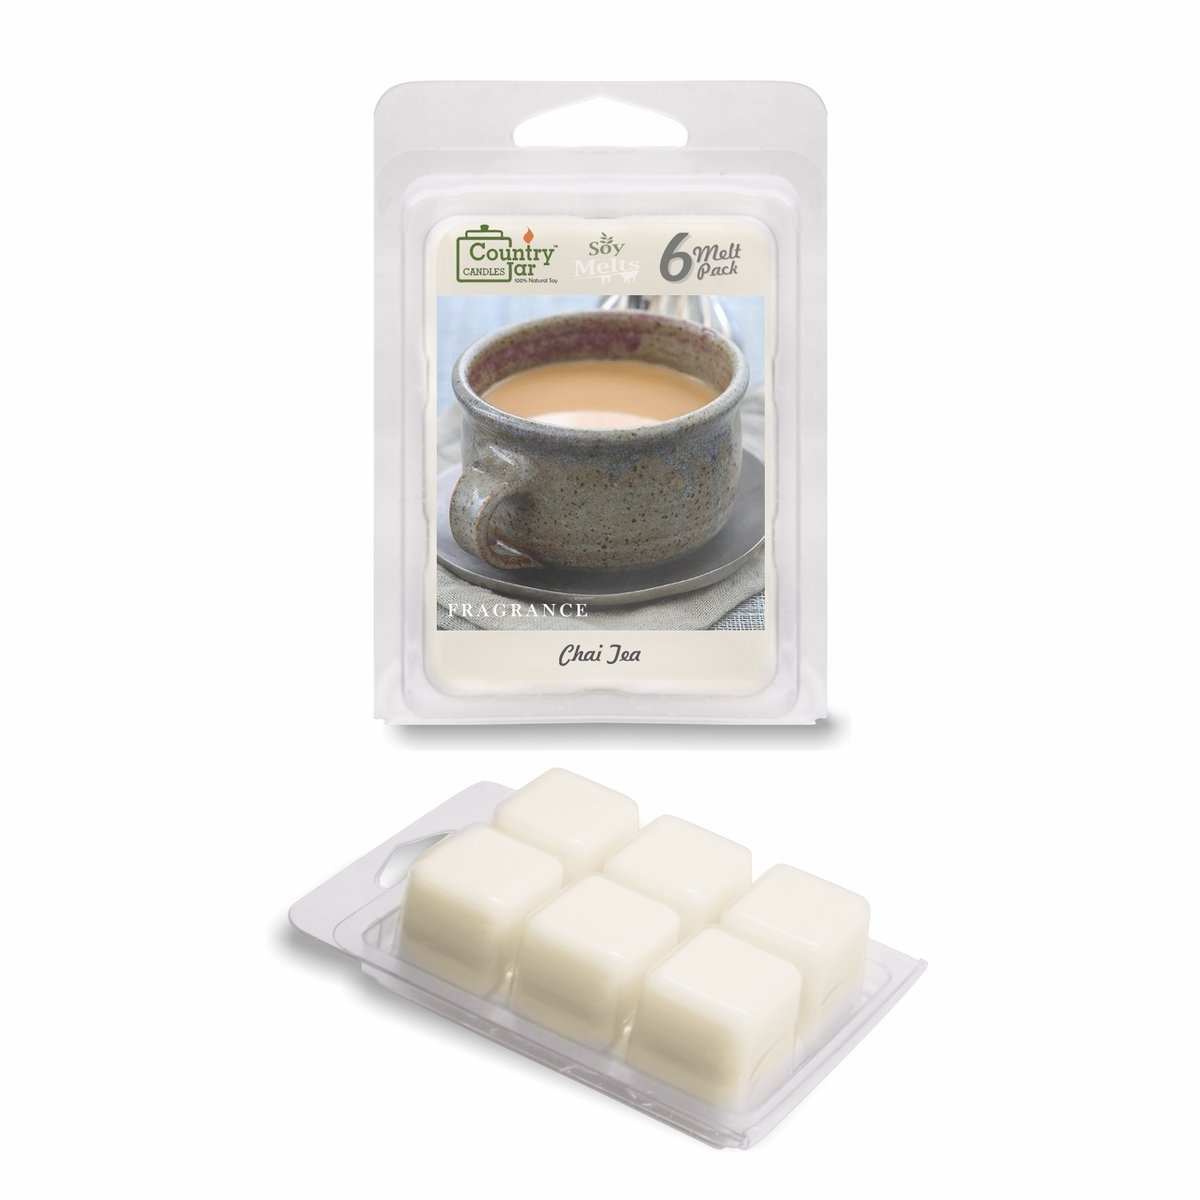 Country Jar CHAI Tea Soy Wax Melt Tarts (6-Cubes) 2.75 oz. [+] Special! 3 for $17.50! 4 for $21.65 (Mix OR Match) MDL-SM033